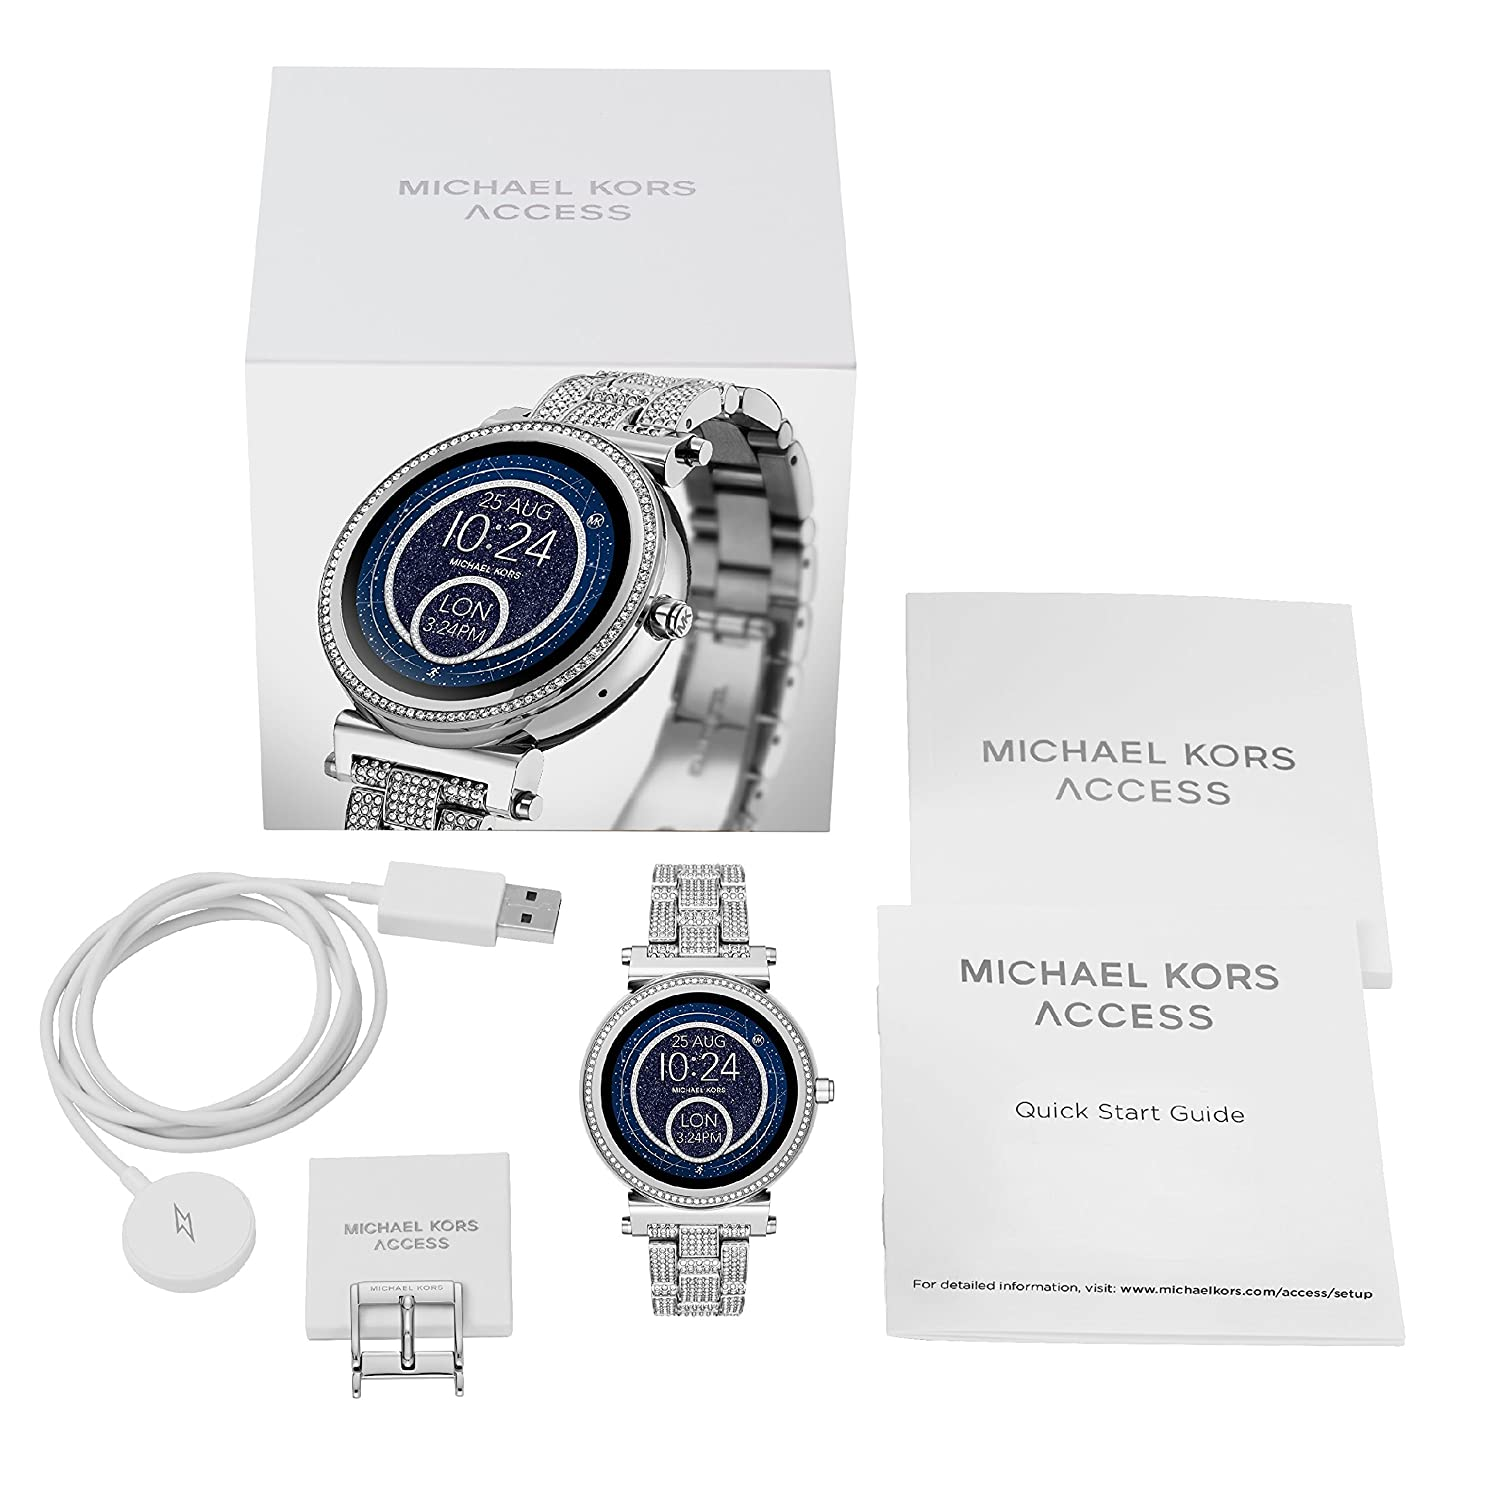 Amazon.com: MICHAEL KORS ACCESS WATCH SOFIE TOUCHSCREEN ...